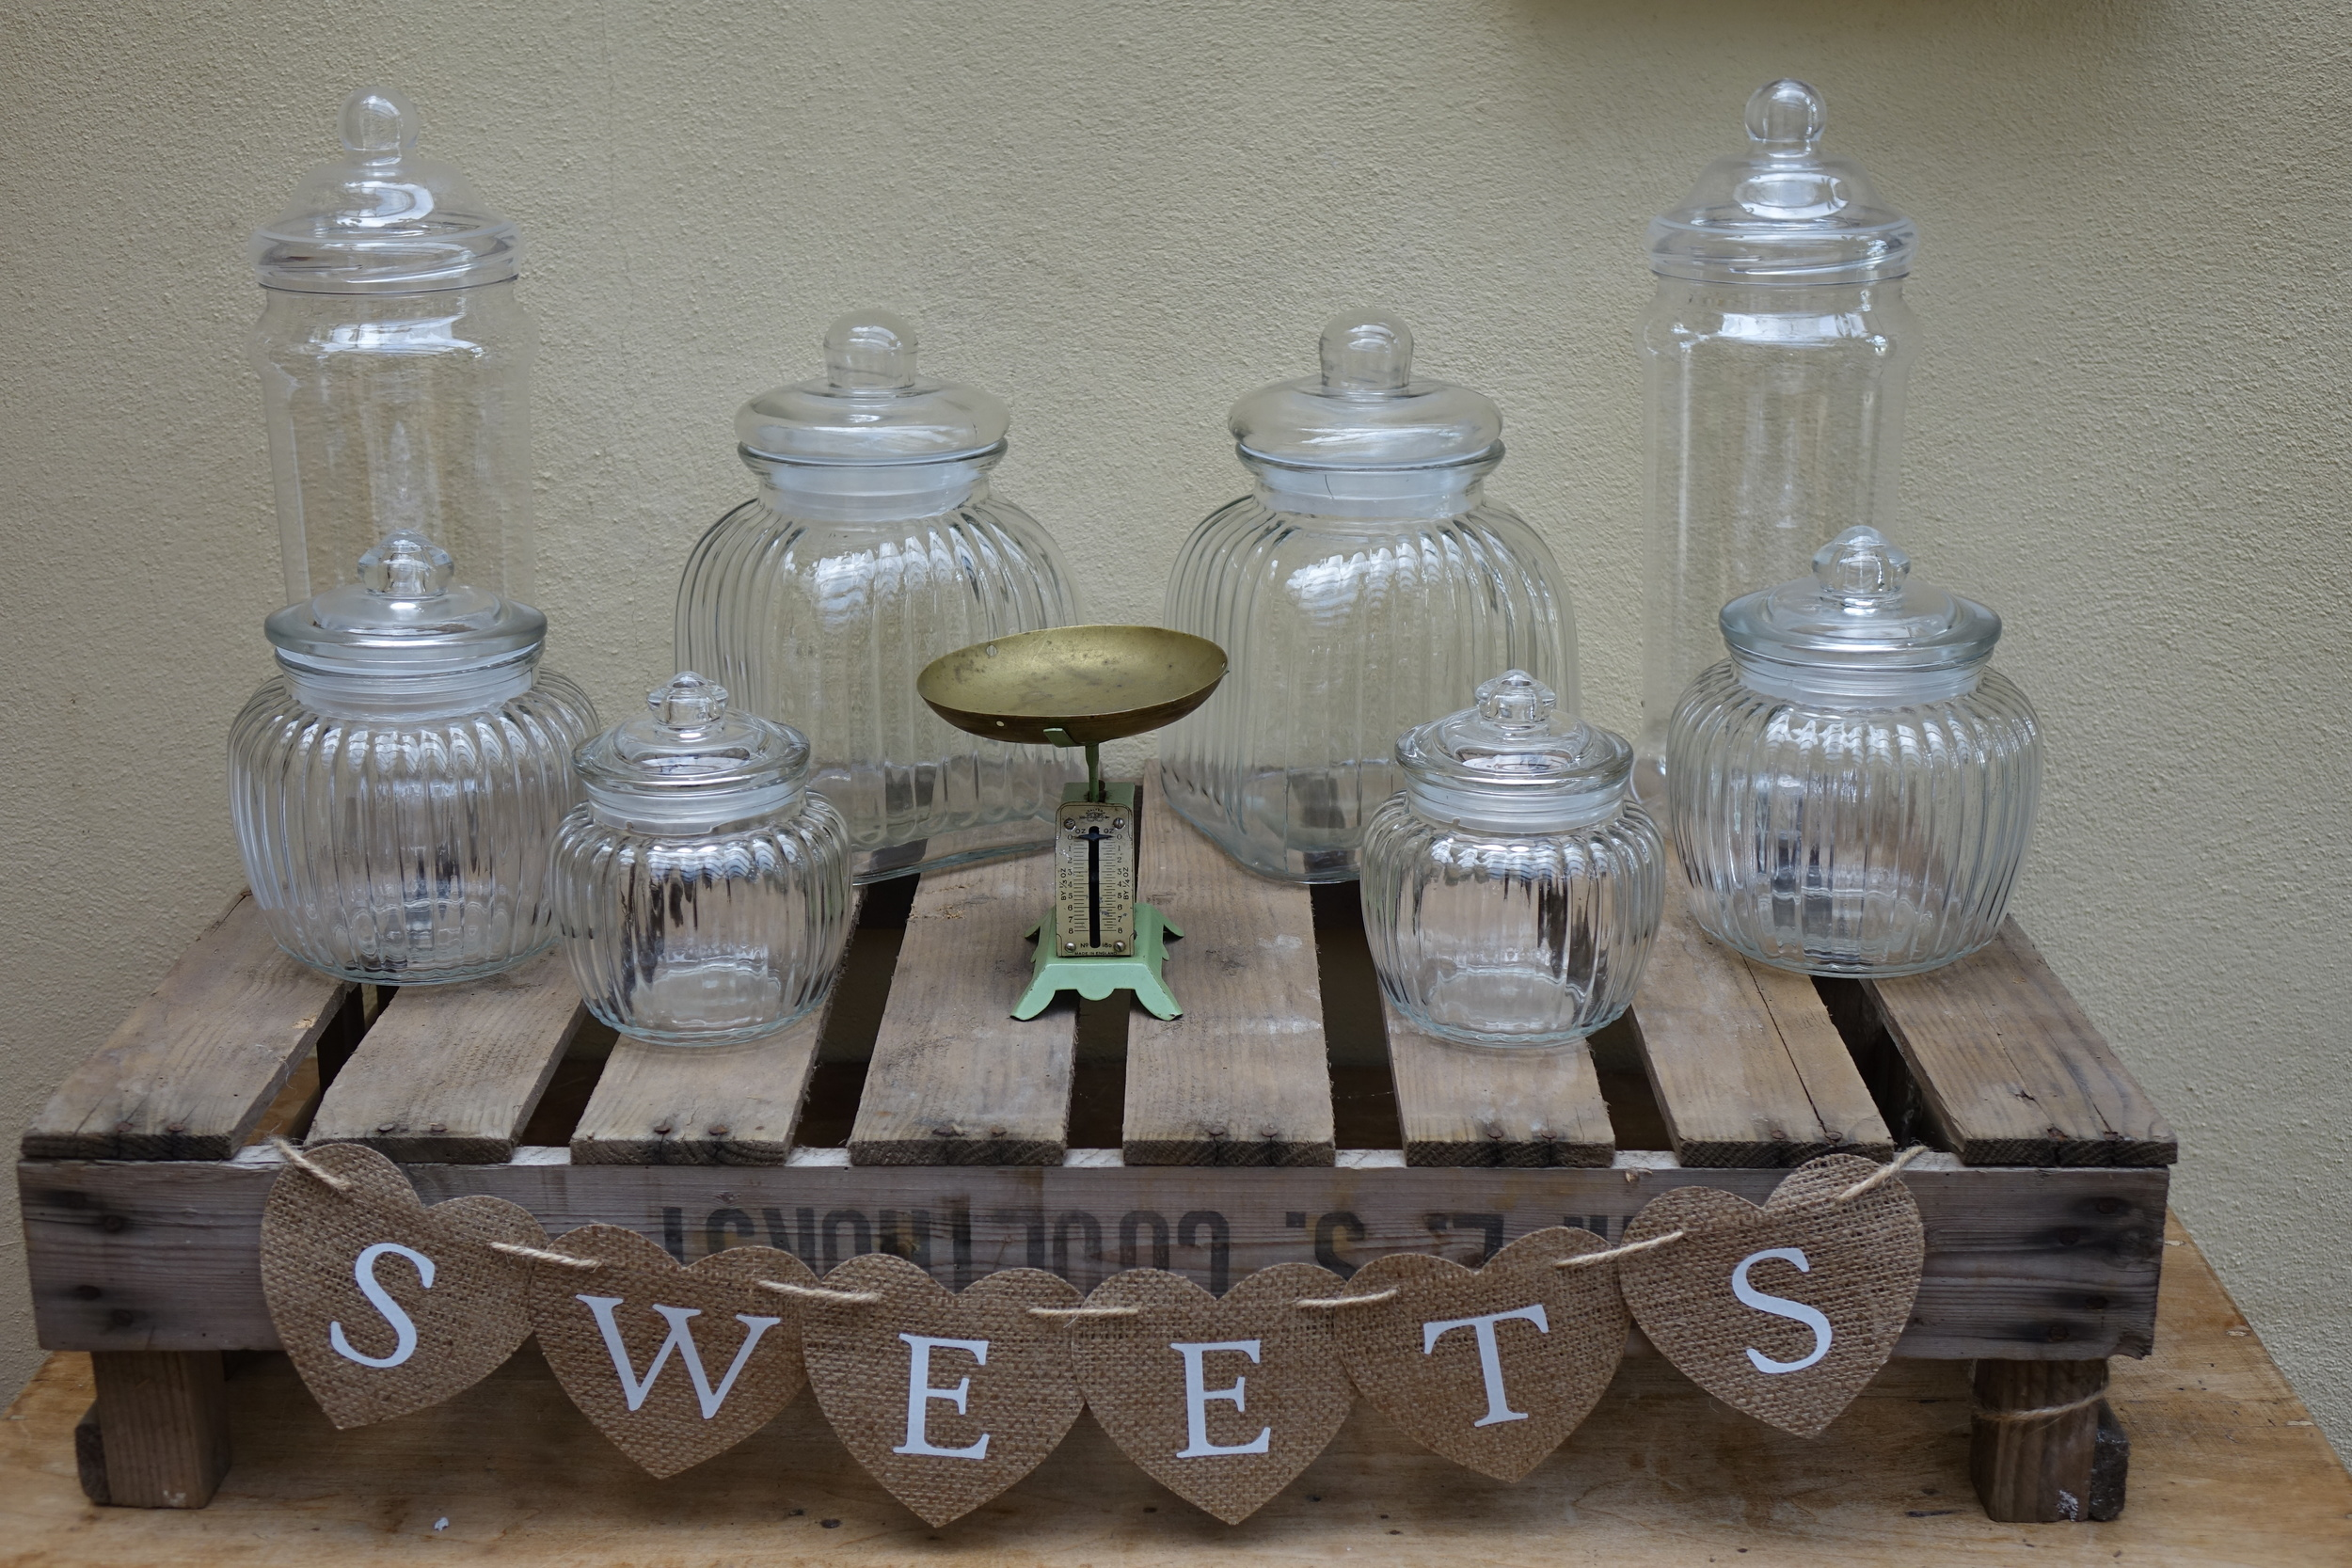 Sweets Hessian Sign £2